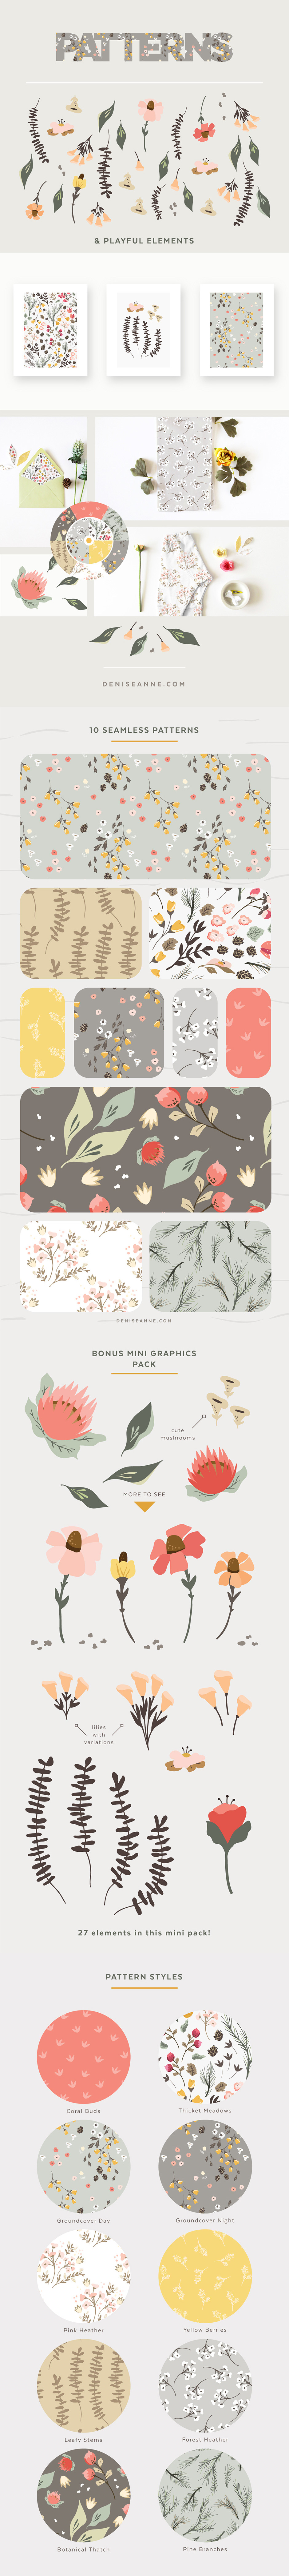 Thicket Thatch: Forest Floral Graphics and Patterns